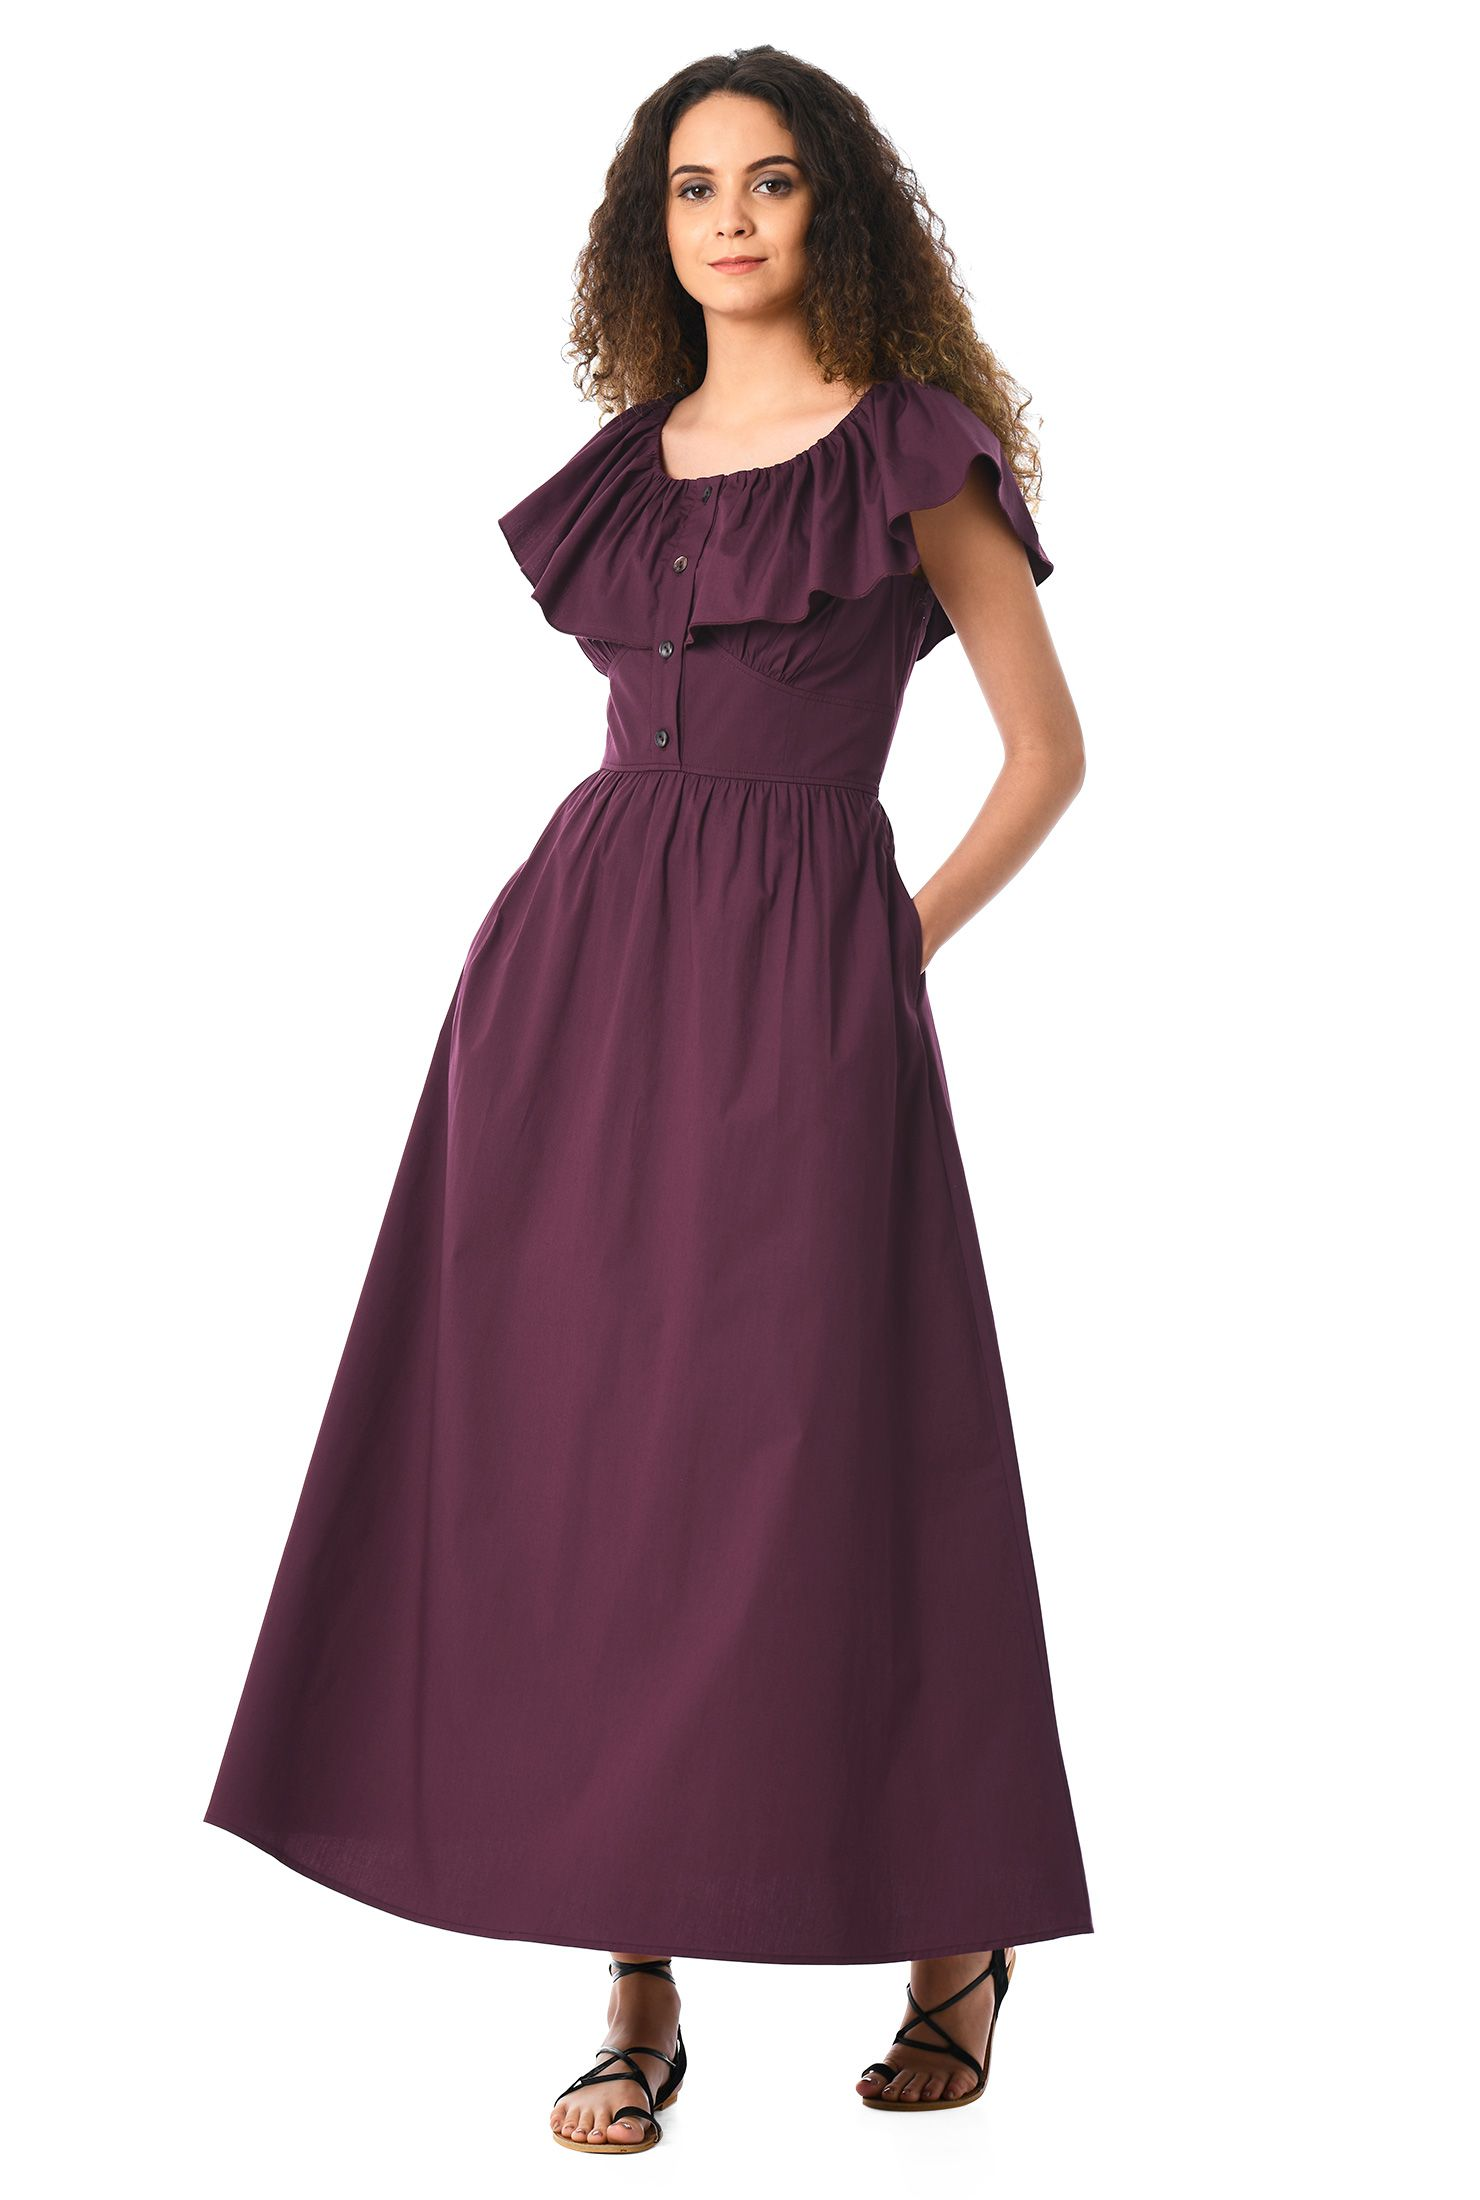 Shop the latest high street fashion online at eshakti from